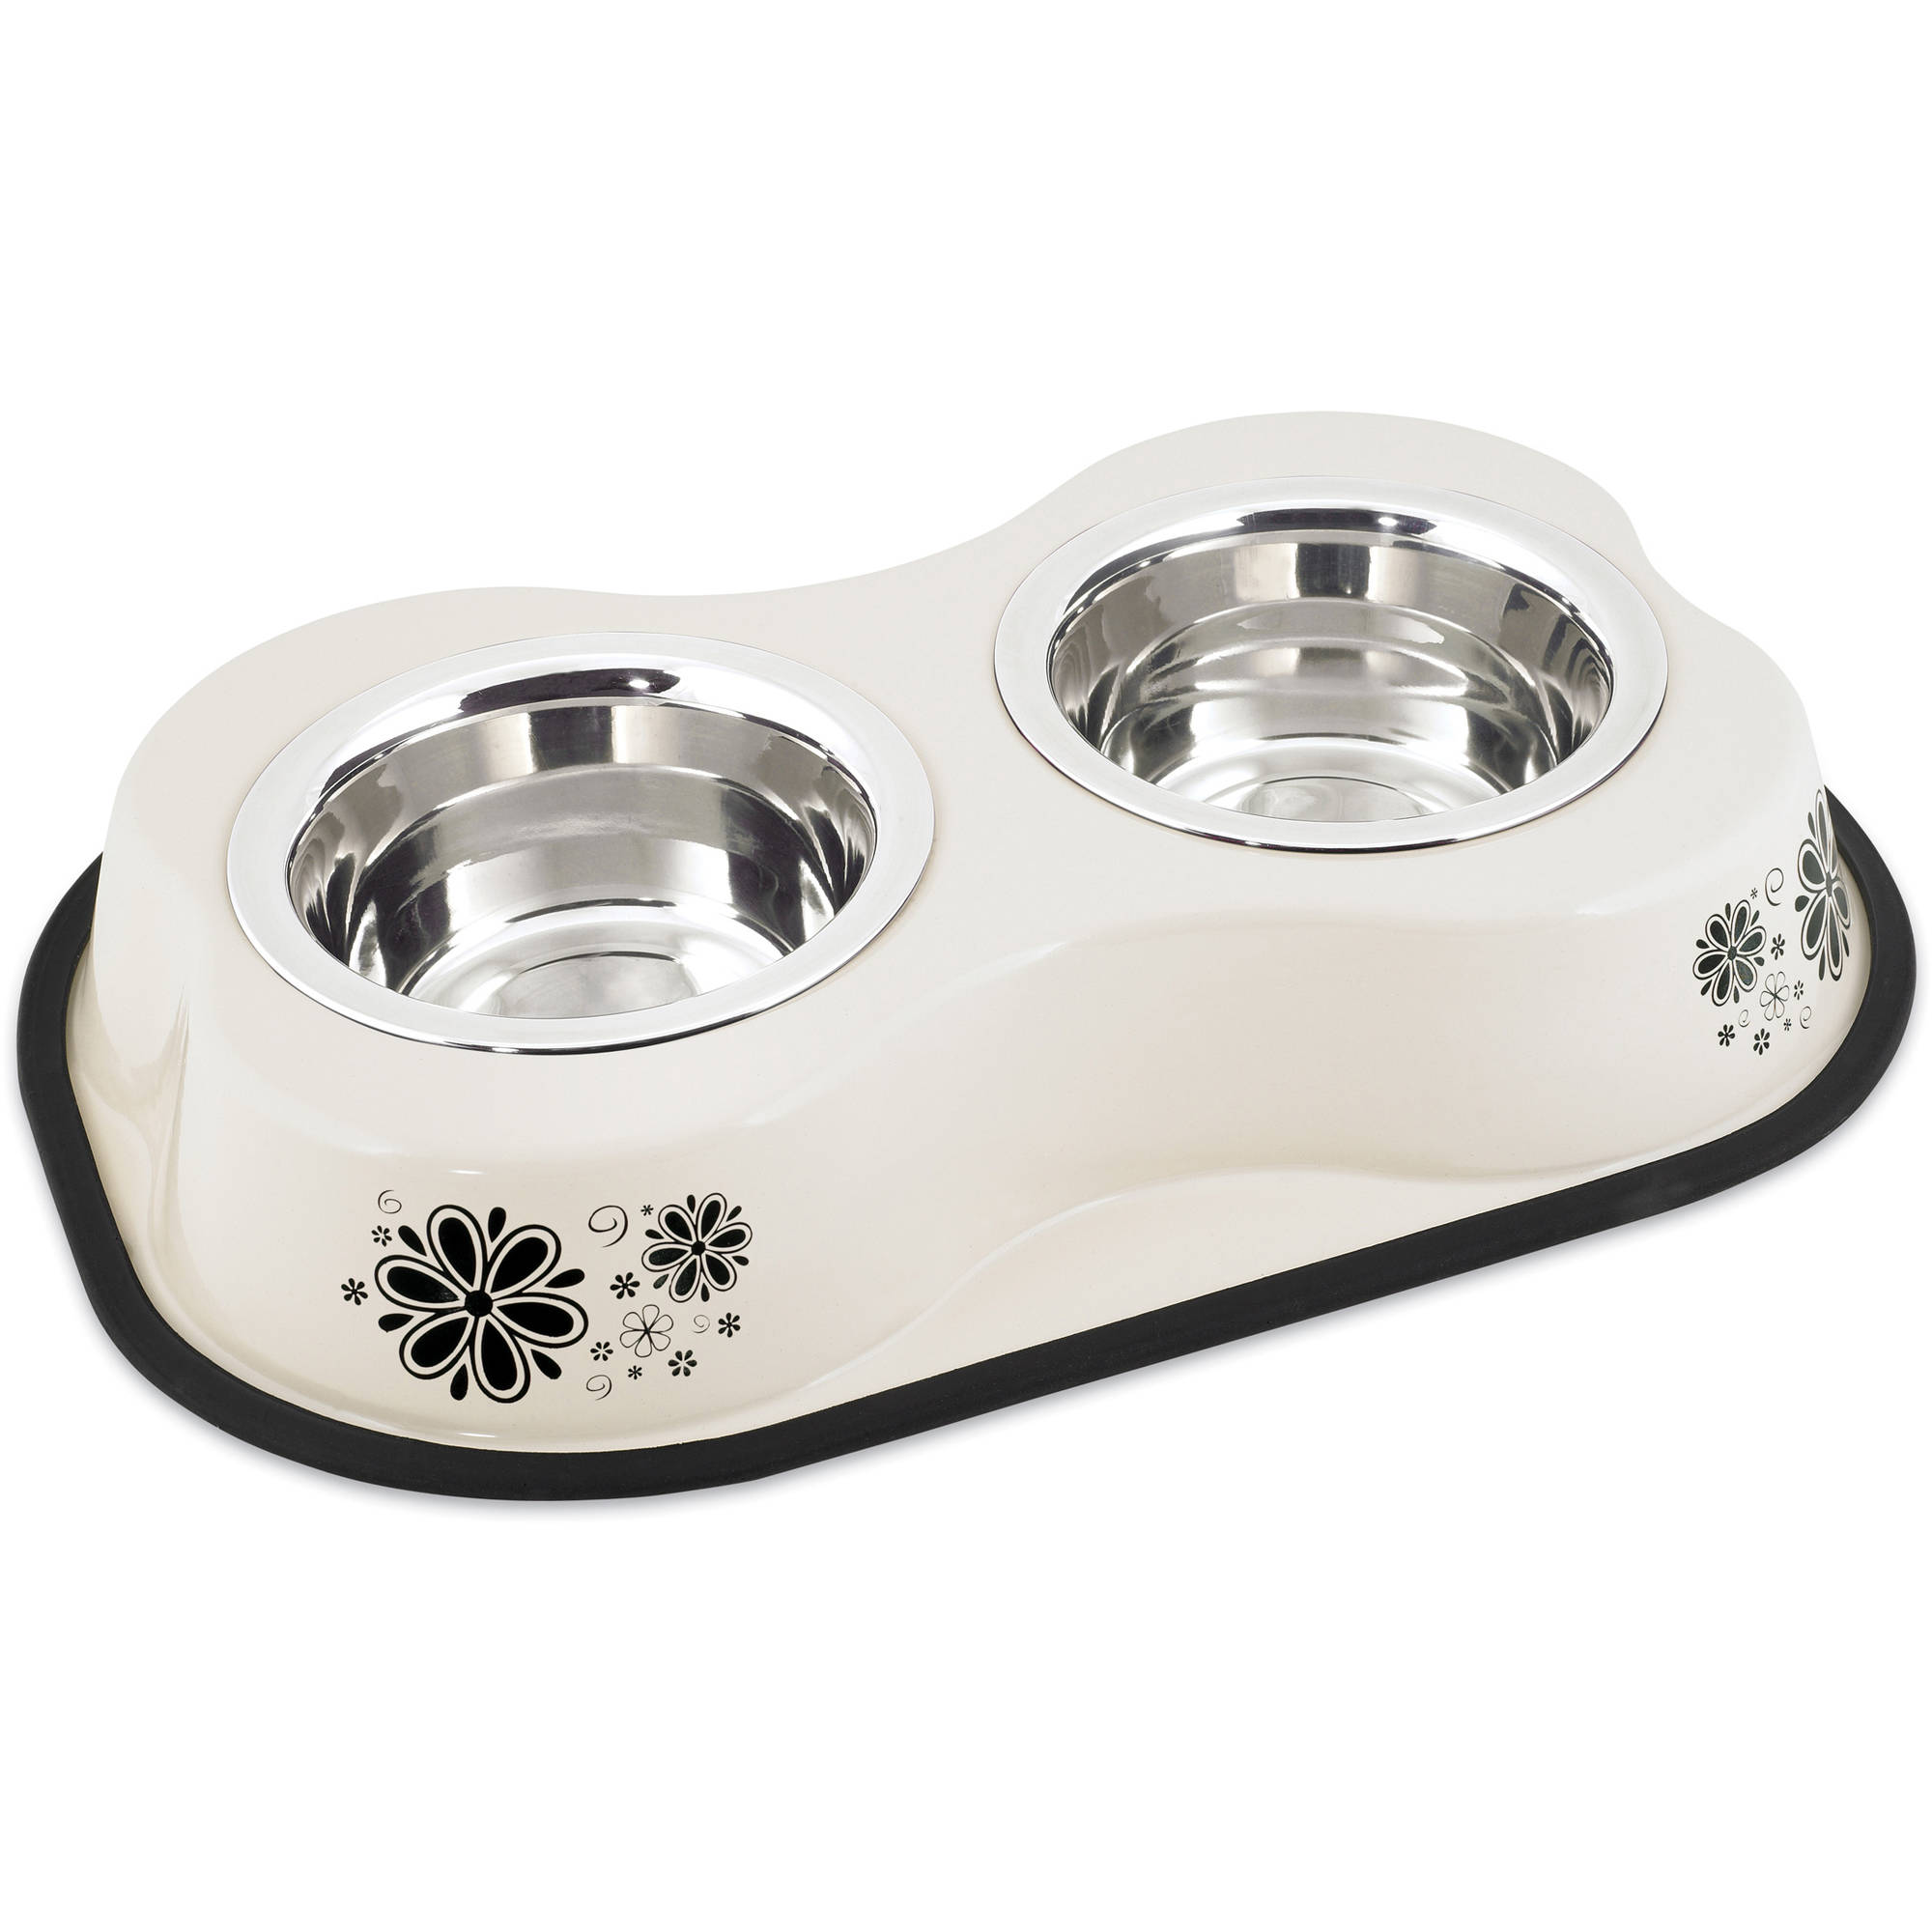 Bone Shaped Double Diner W/2 1pt Stainless Steel Bowls, Flower Pattern Ivory